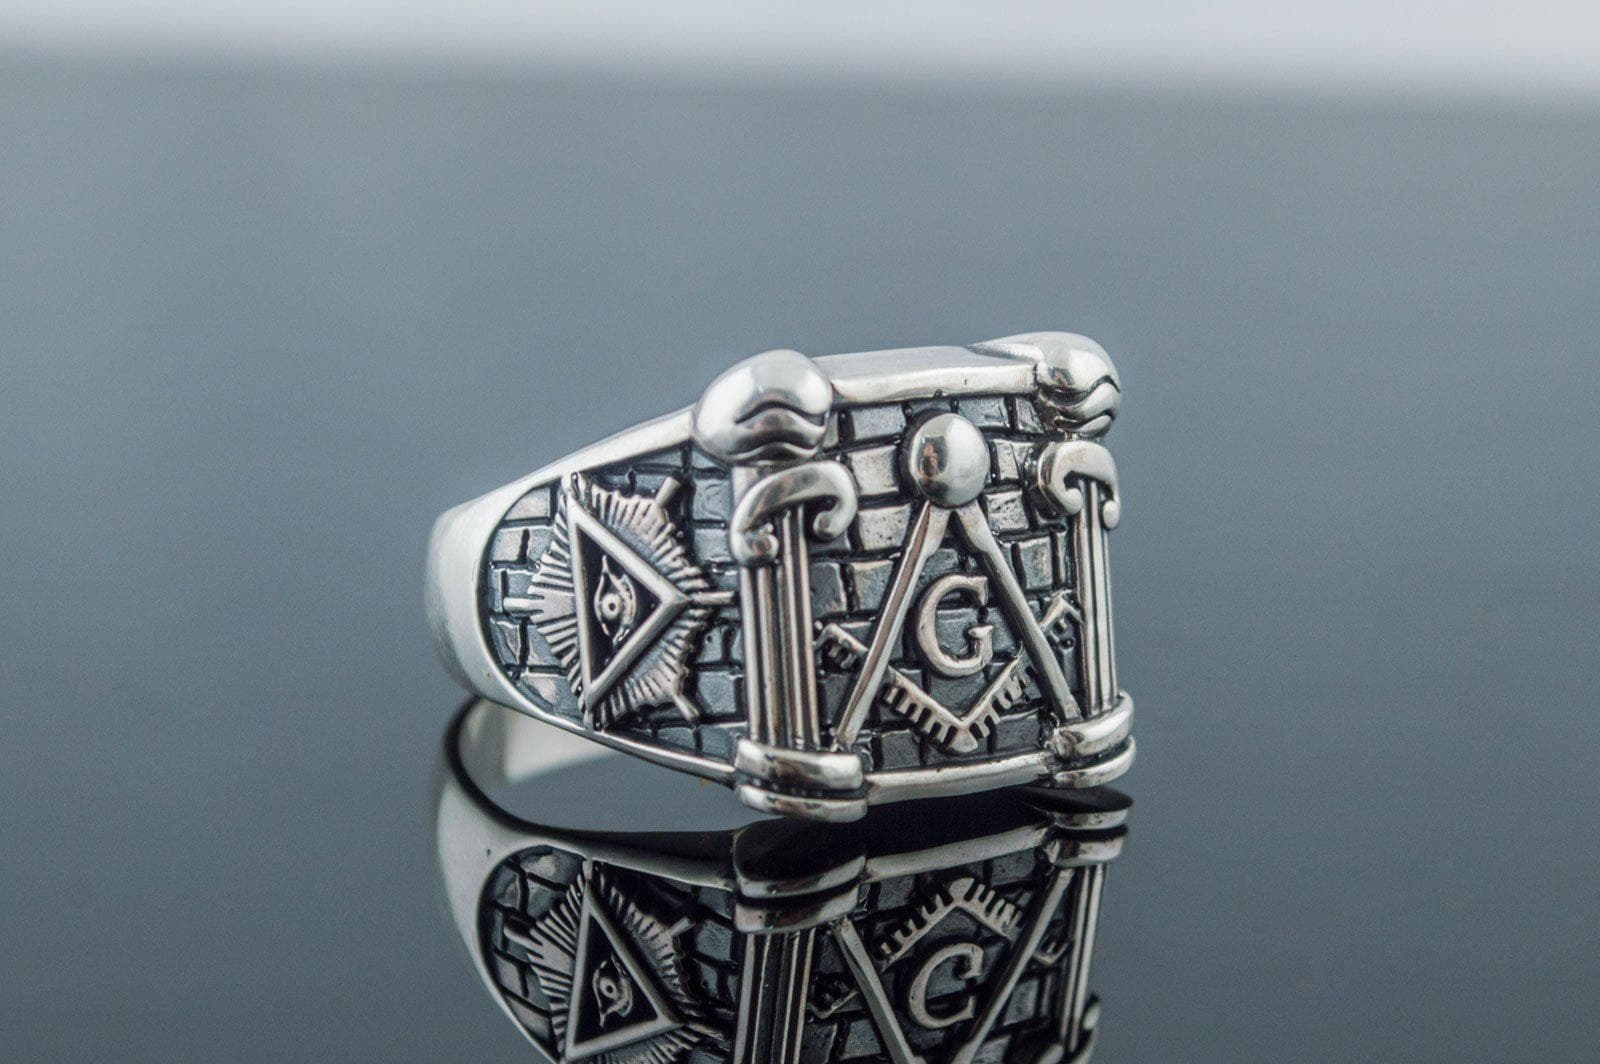 Rings Masonic Square Sterling Silver Ring with Pillars & Eye of Providence Ancient Treasures Ancientreasures Viking Odin Thor Mjolnir Celtic Ancient Egypt Norse Norse Mythology